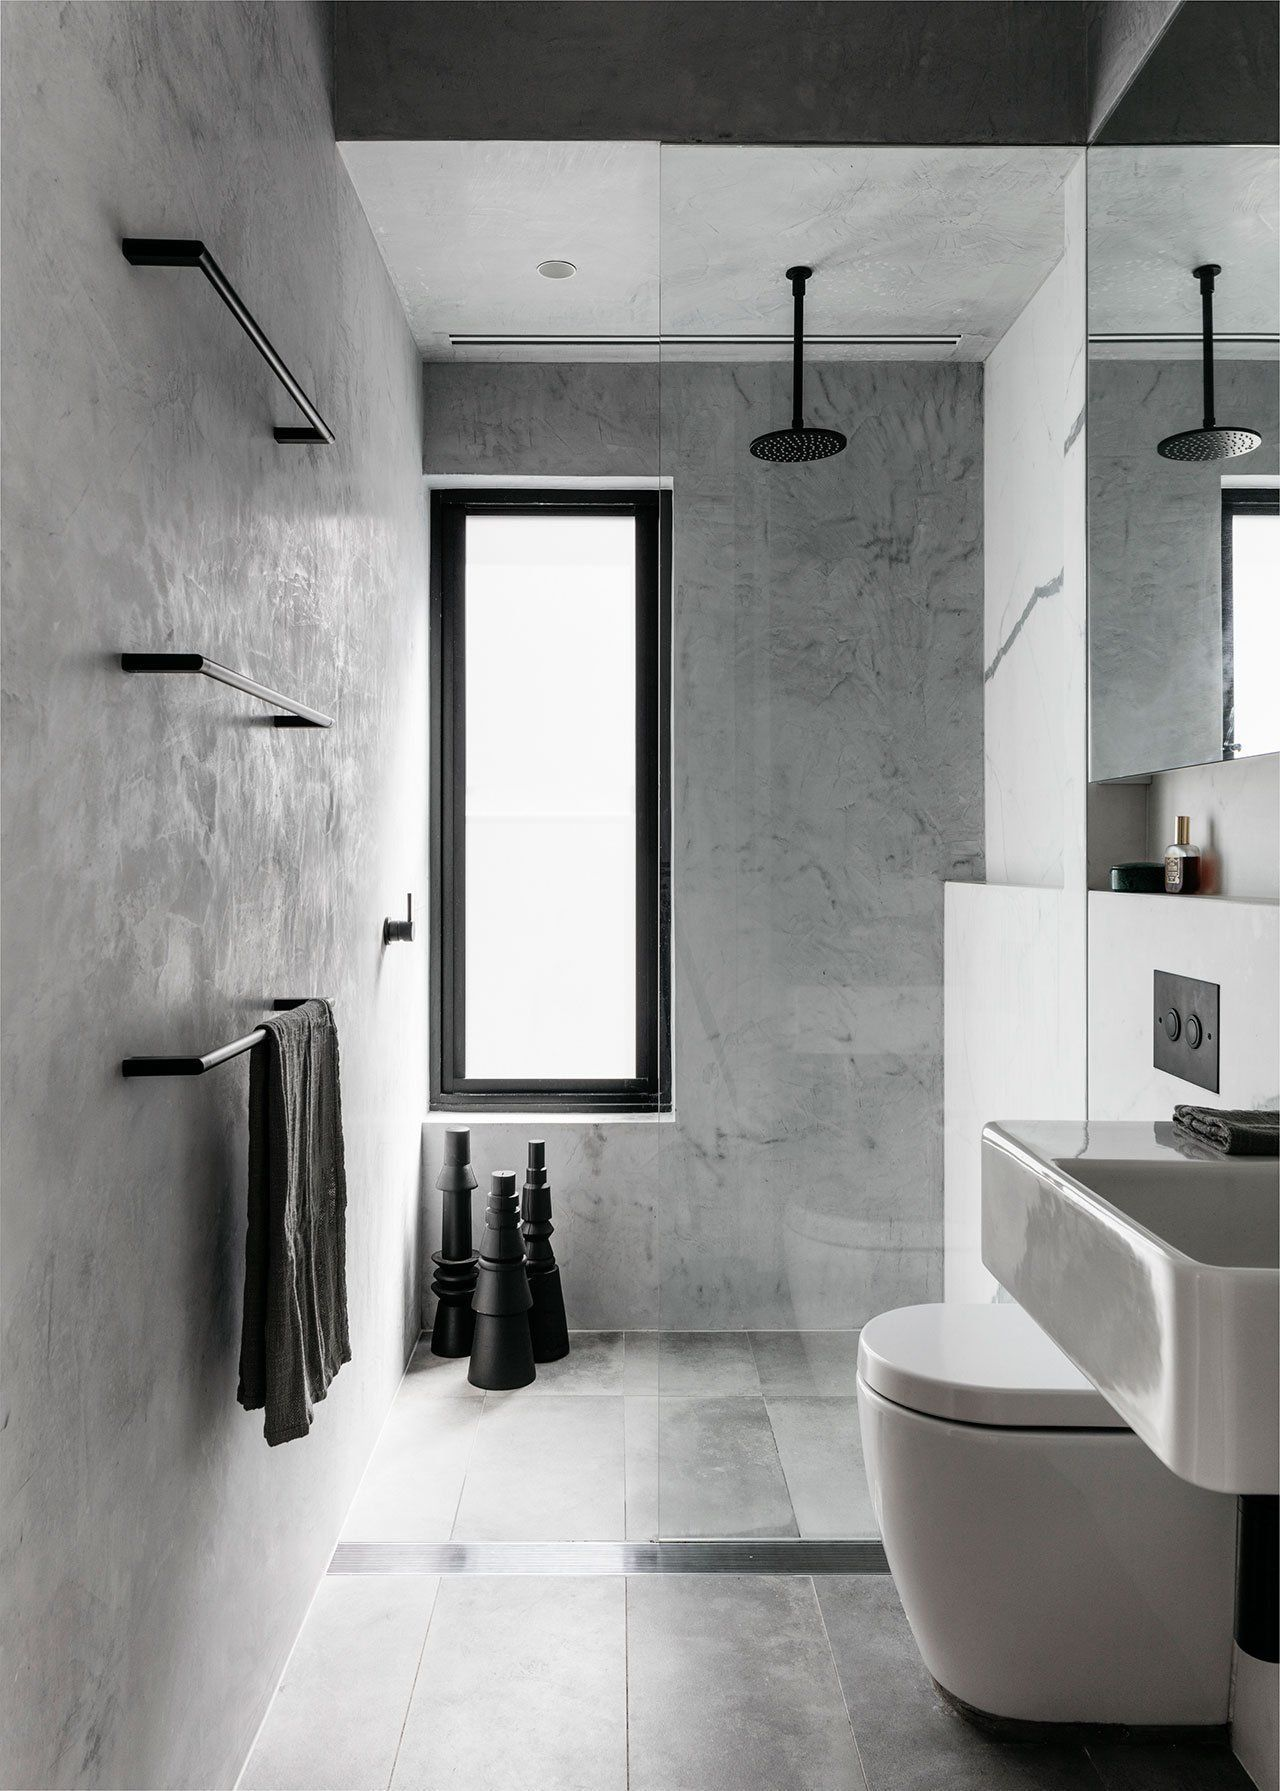 COCOON black bathroom taps bycocoon.com | modern black taps ...